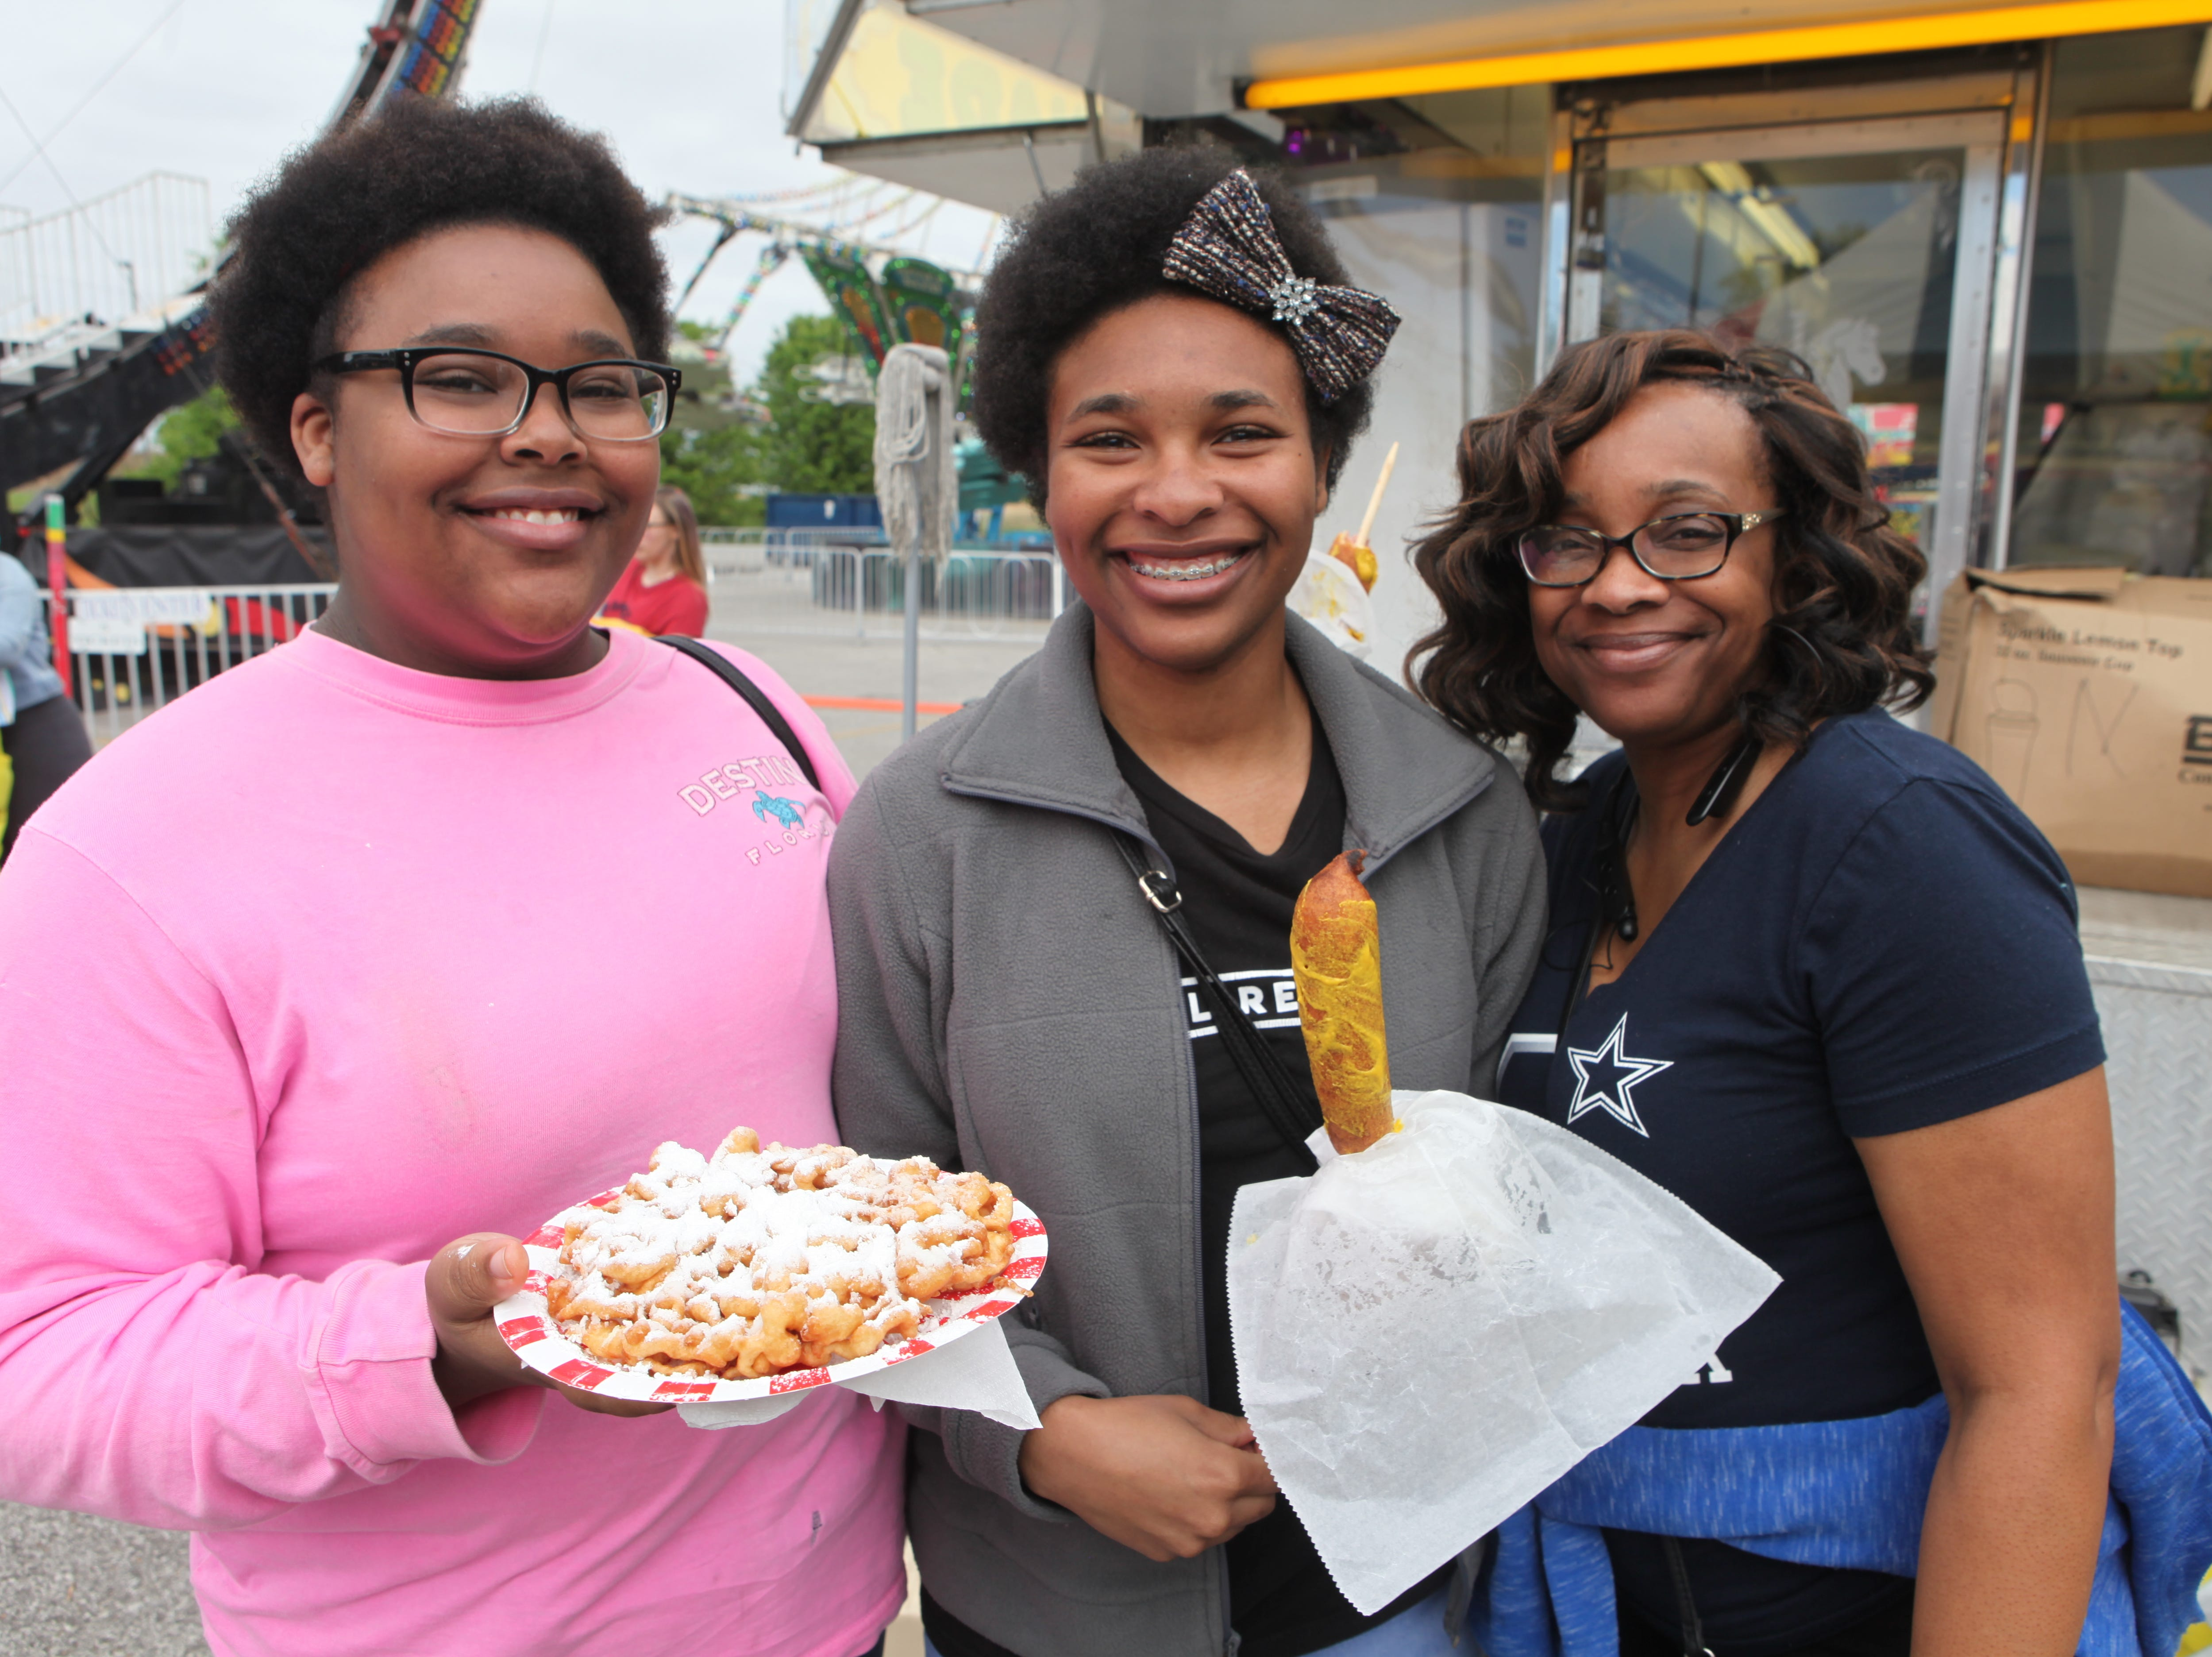 Autumn, Essence and Kesha Eddins at Governor's Square Mall's Spring Carnival on Saturday, April 20, 2019.